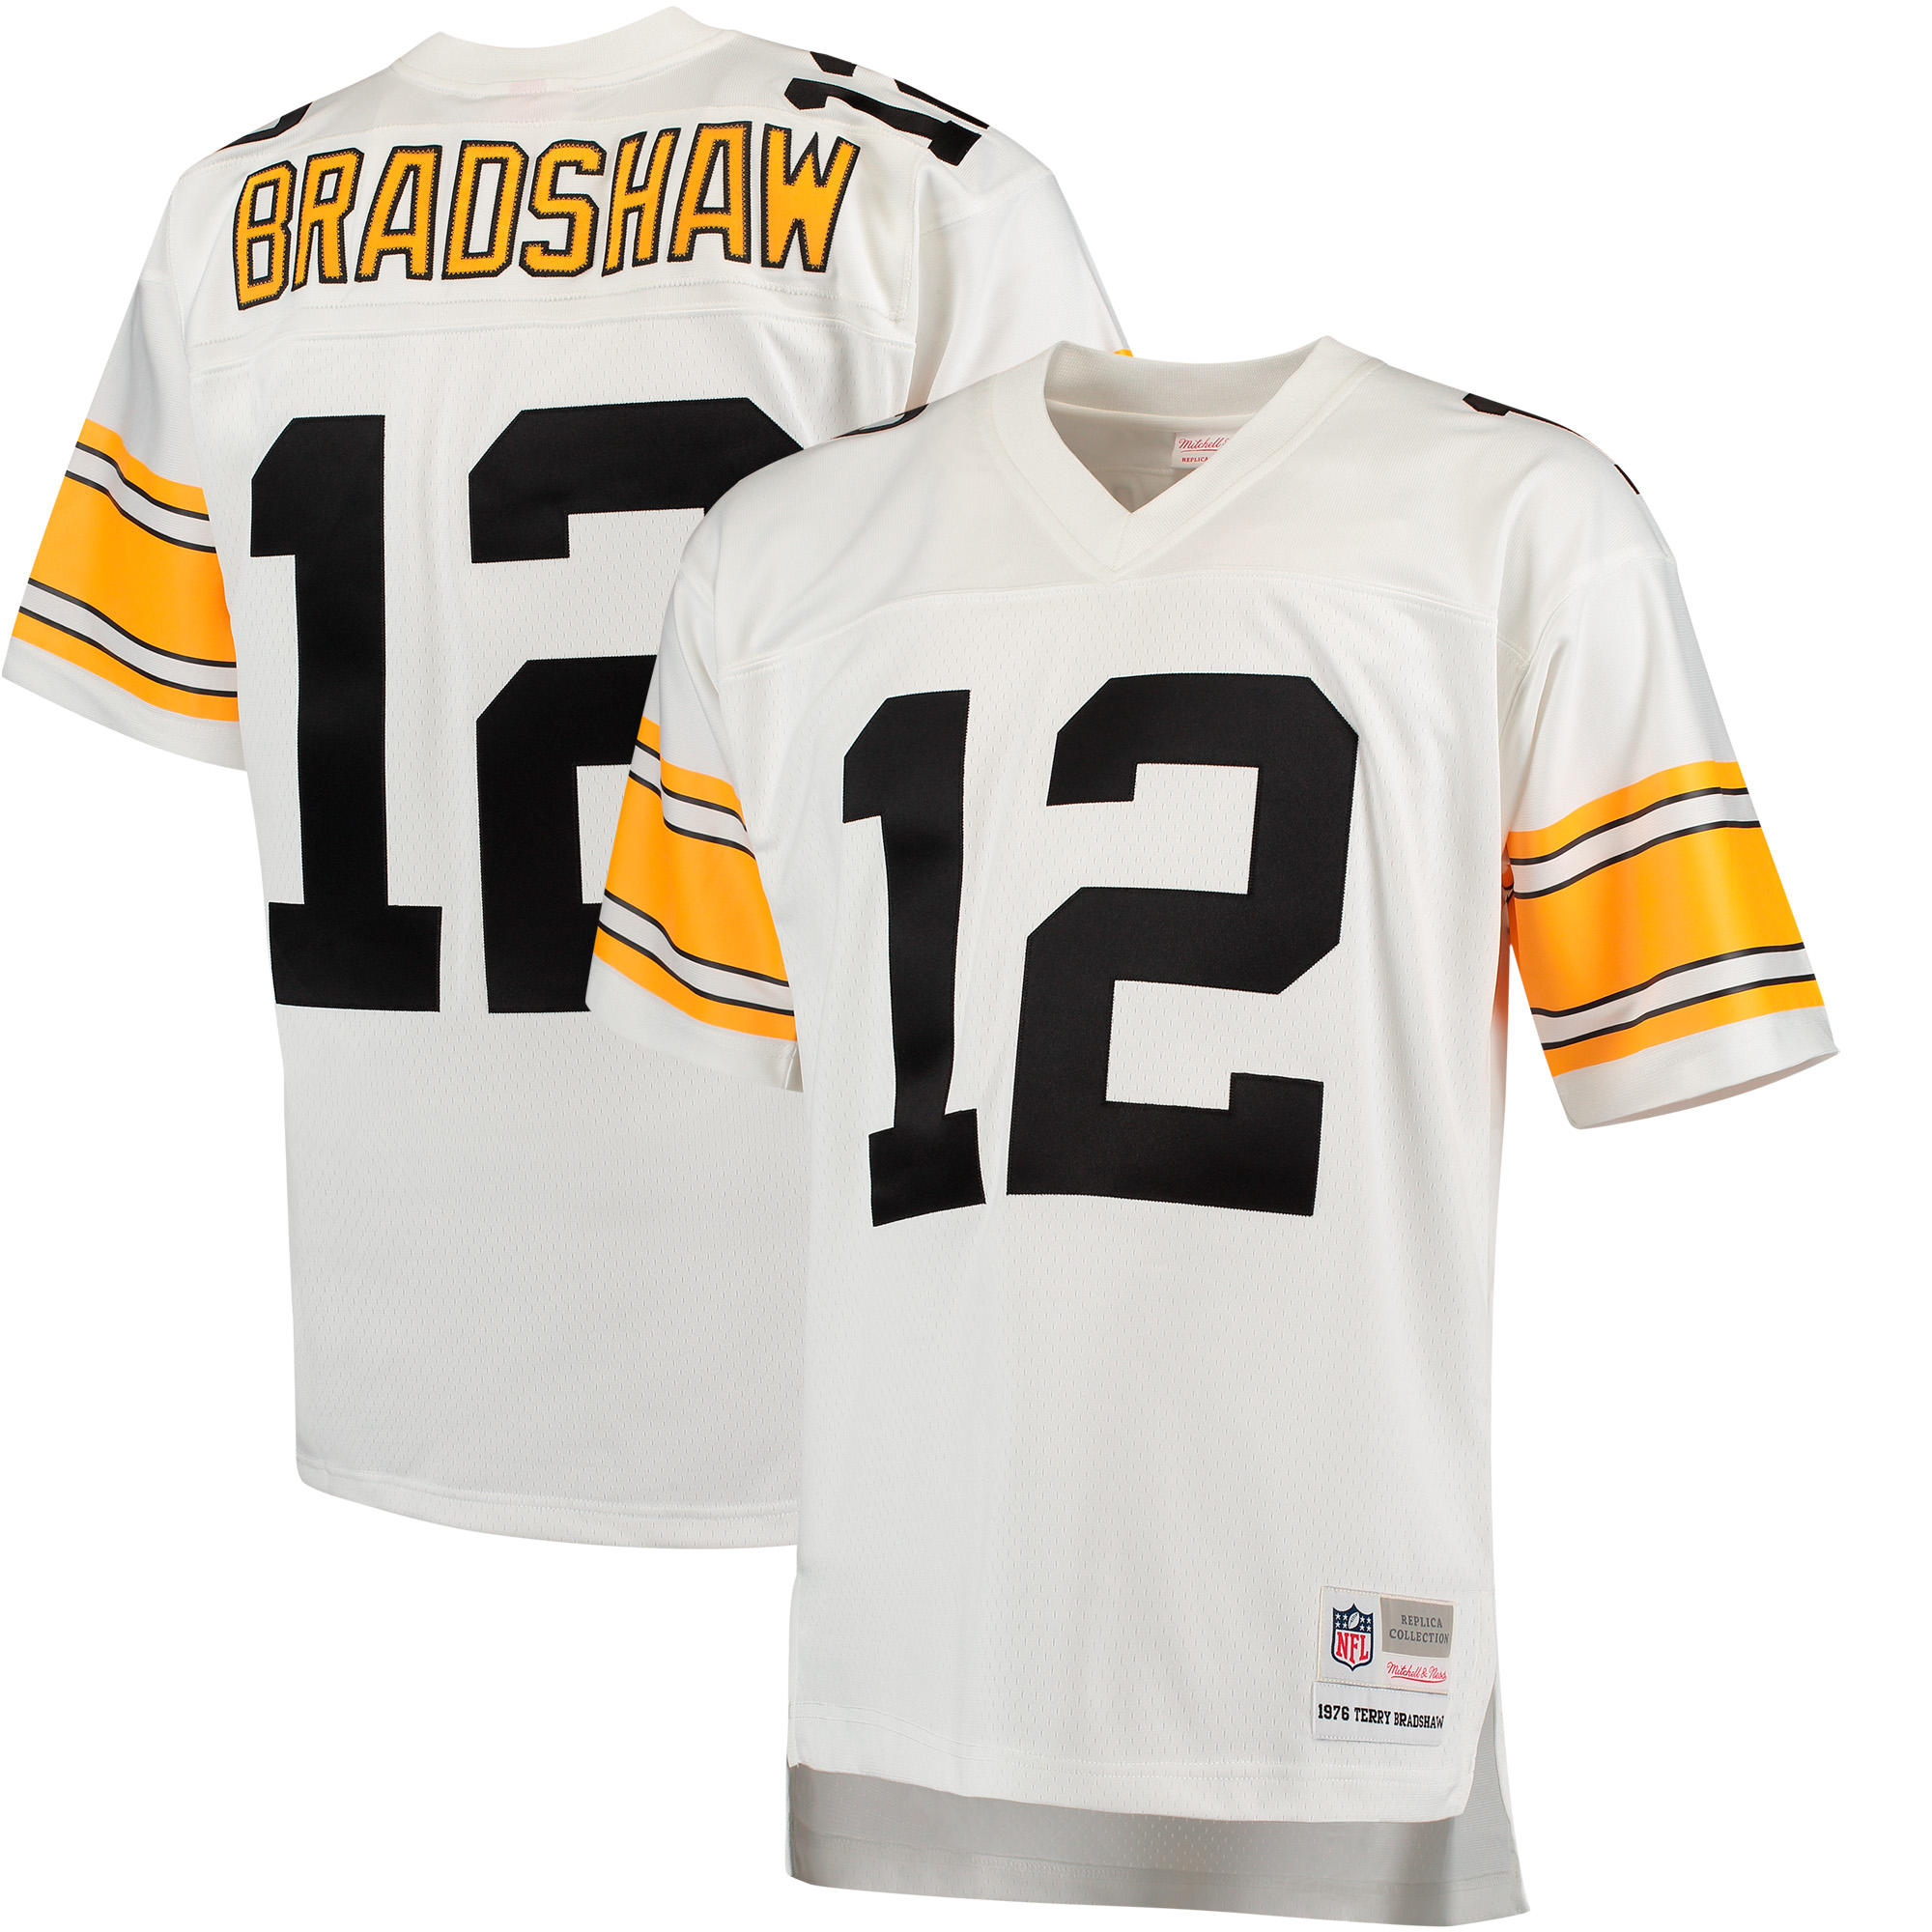 b9d515b19 ... promo code for product image terry bradshaw pittsburgh steelers  mitchell ness 1976 replica retired player jersey